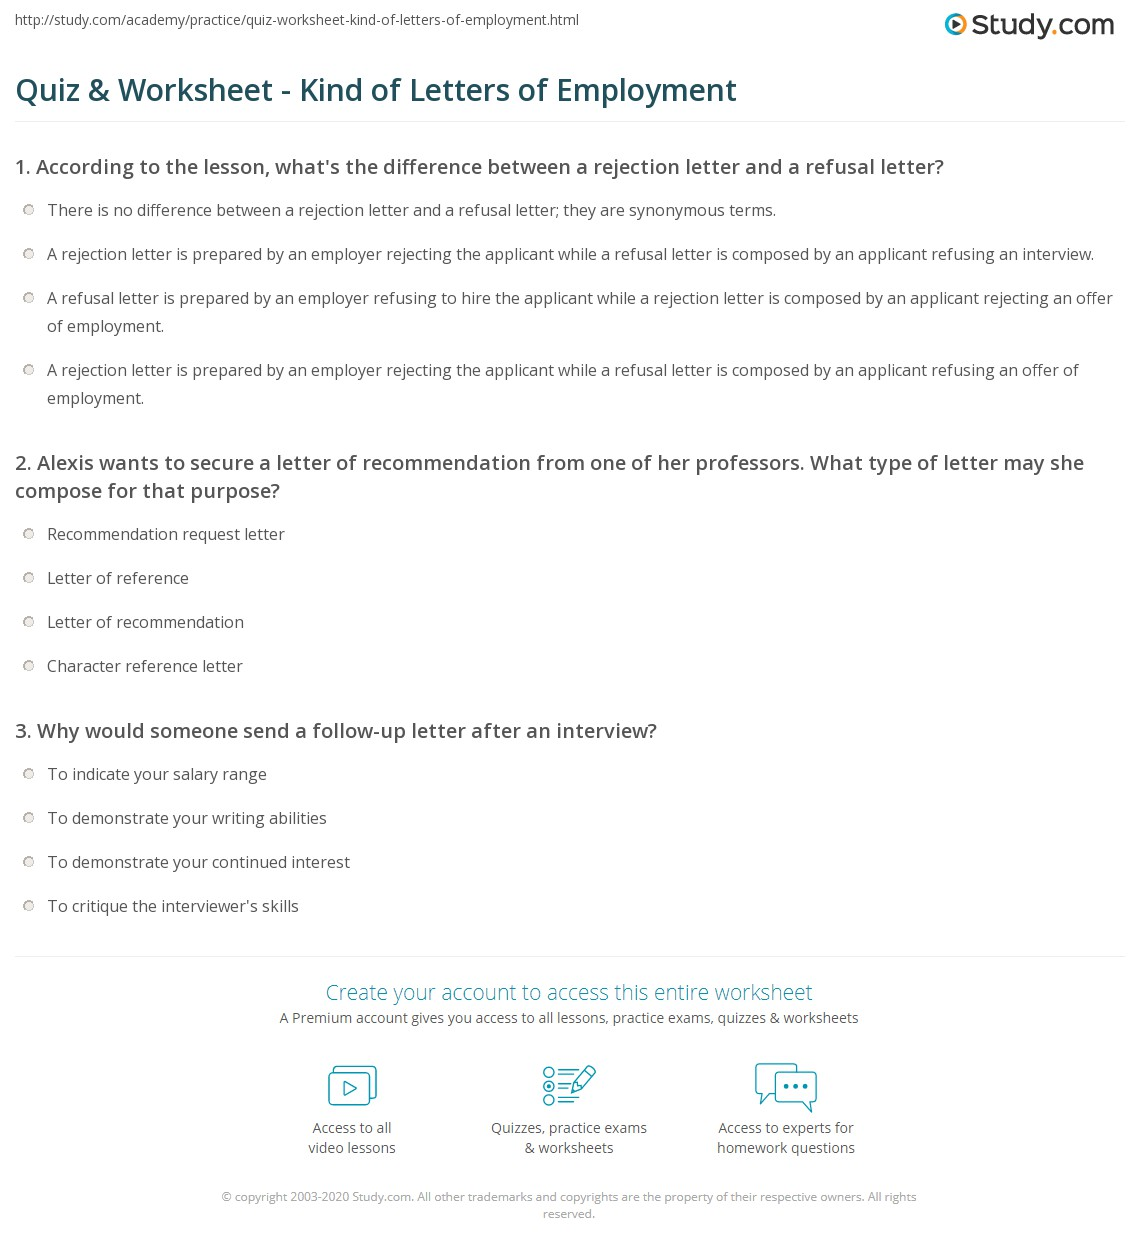 quiz worksheet kind of letters of employment com print types of letters of employment worksheet